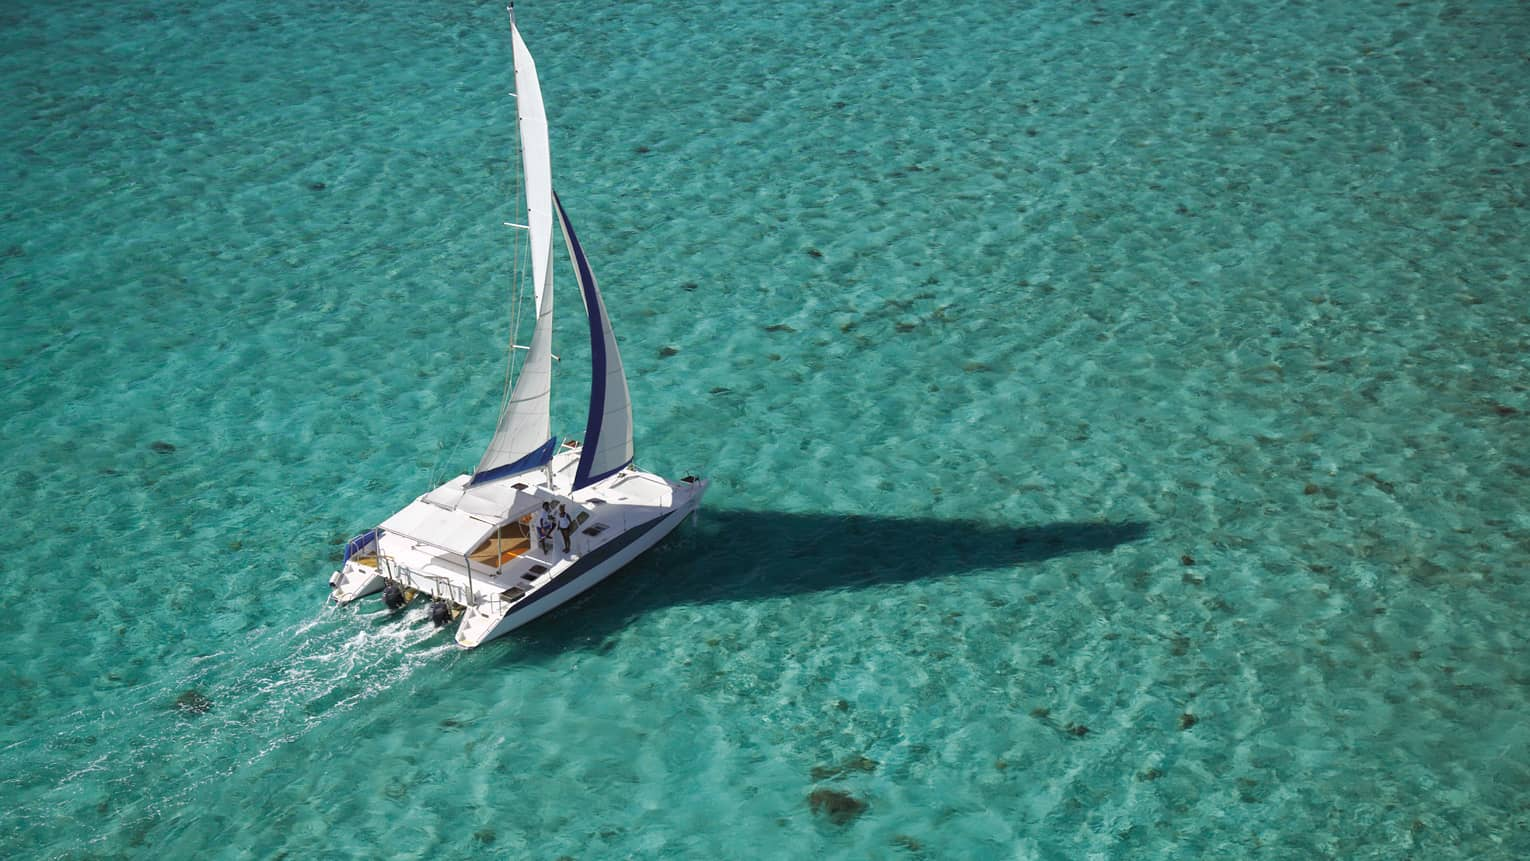 Aerial view of white yacht, sail on turquoise water in lagoon